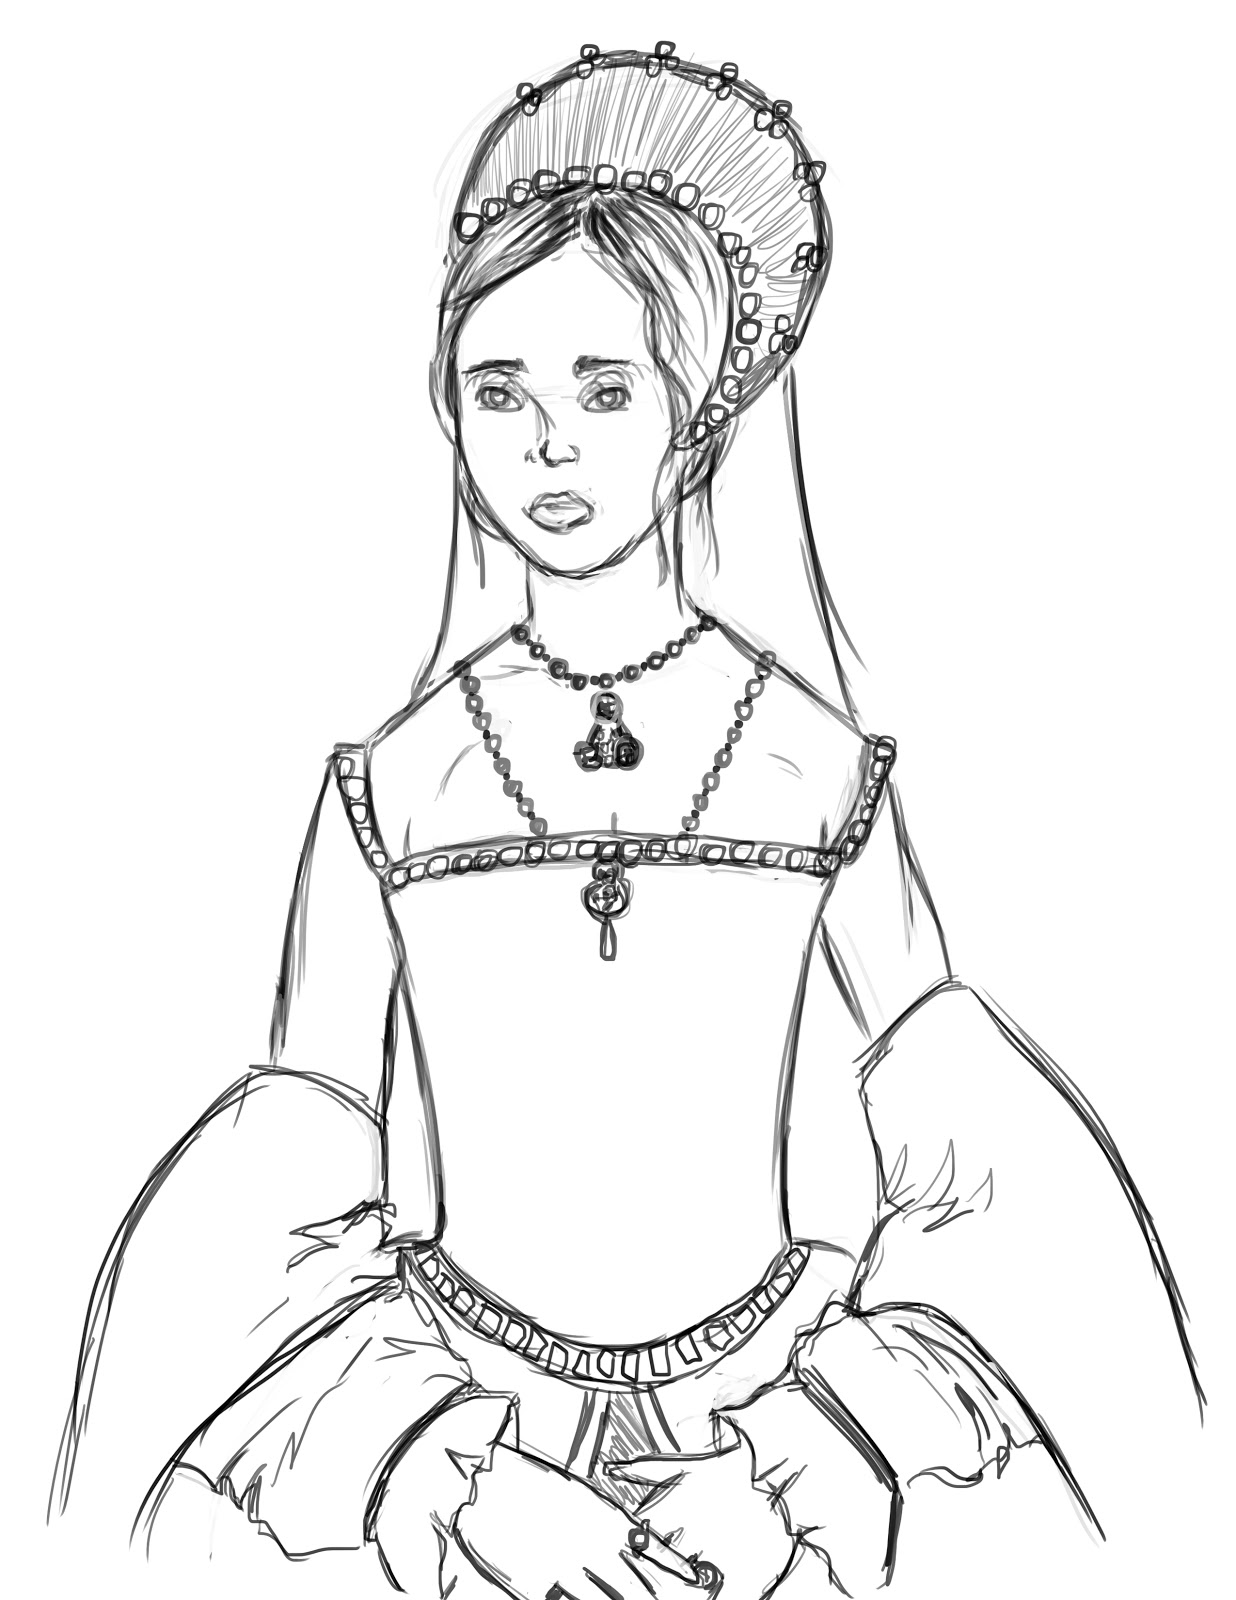 1236x1600 Queen Mary I Of England, The Sketch. Caeleigh Girard